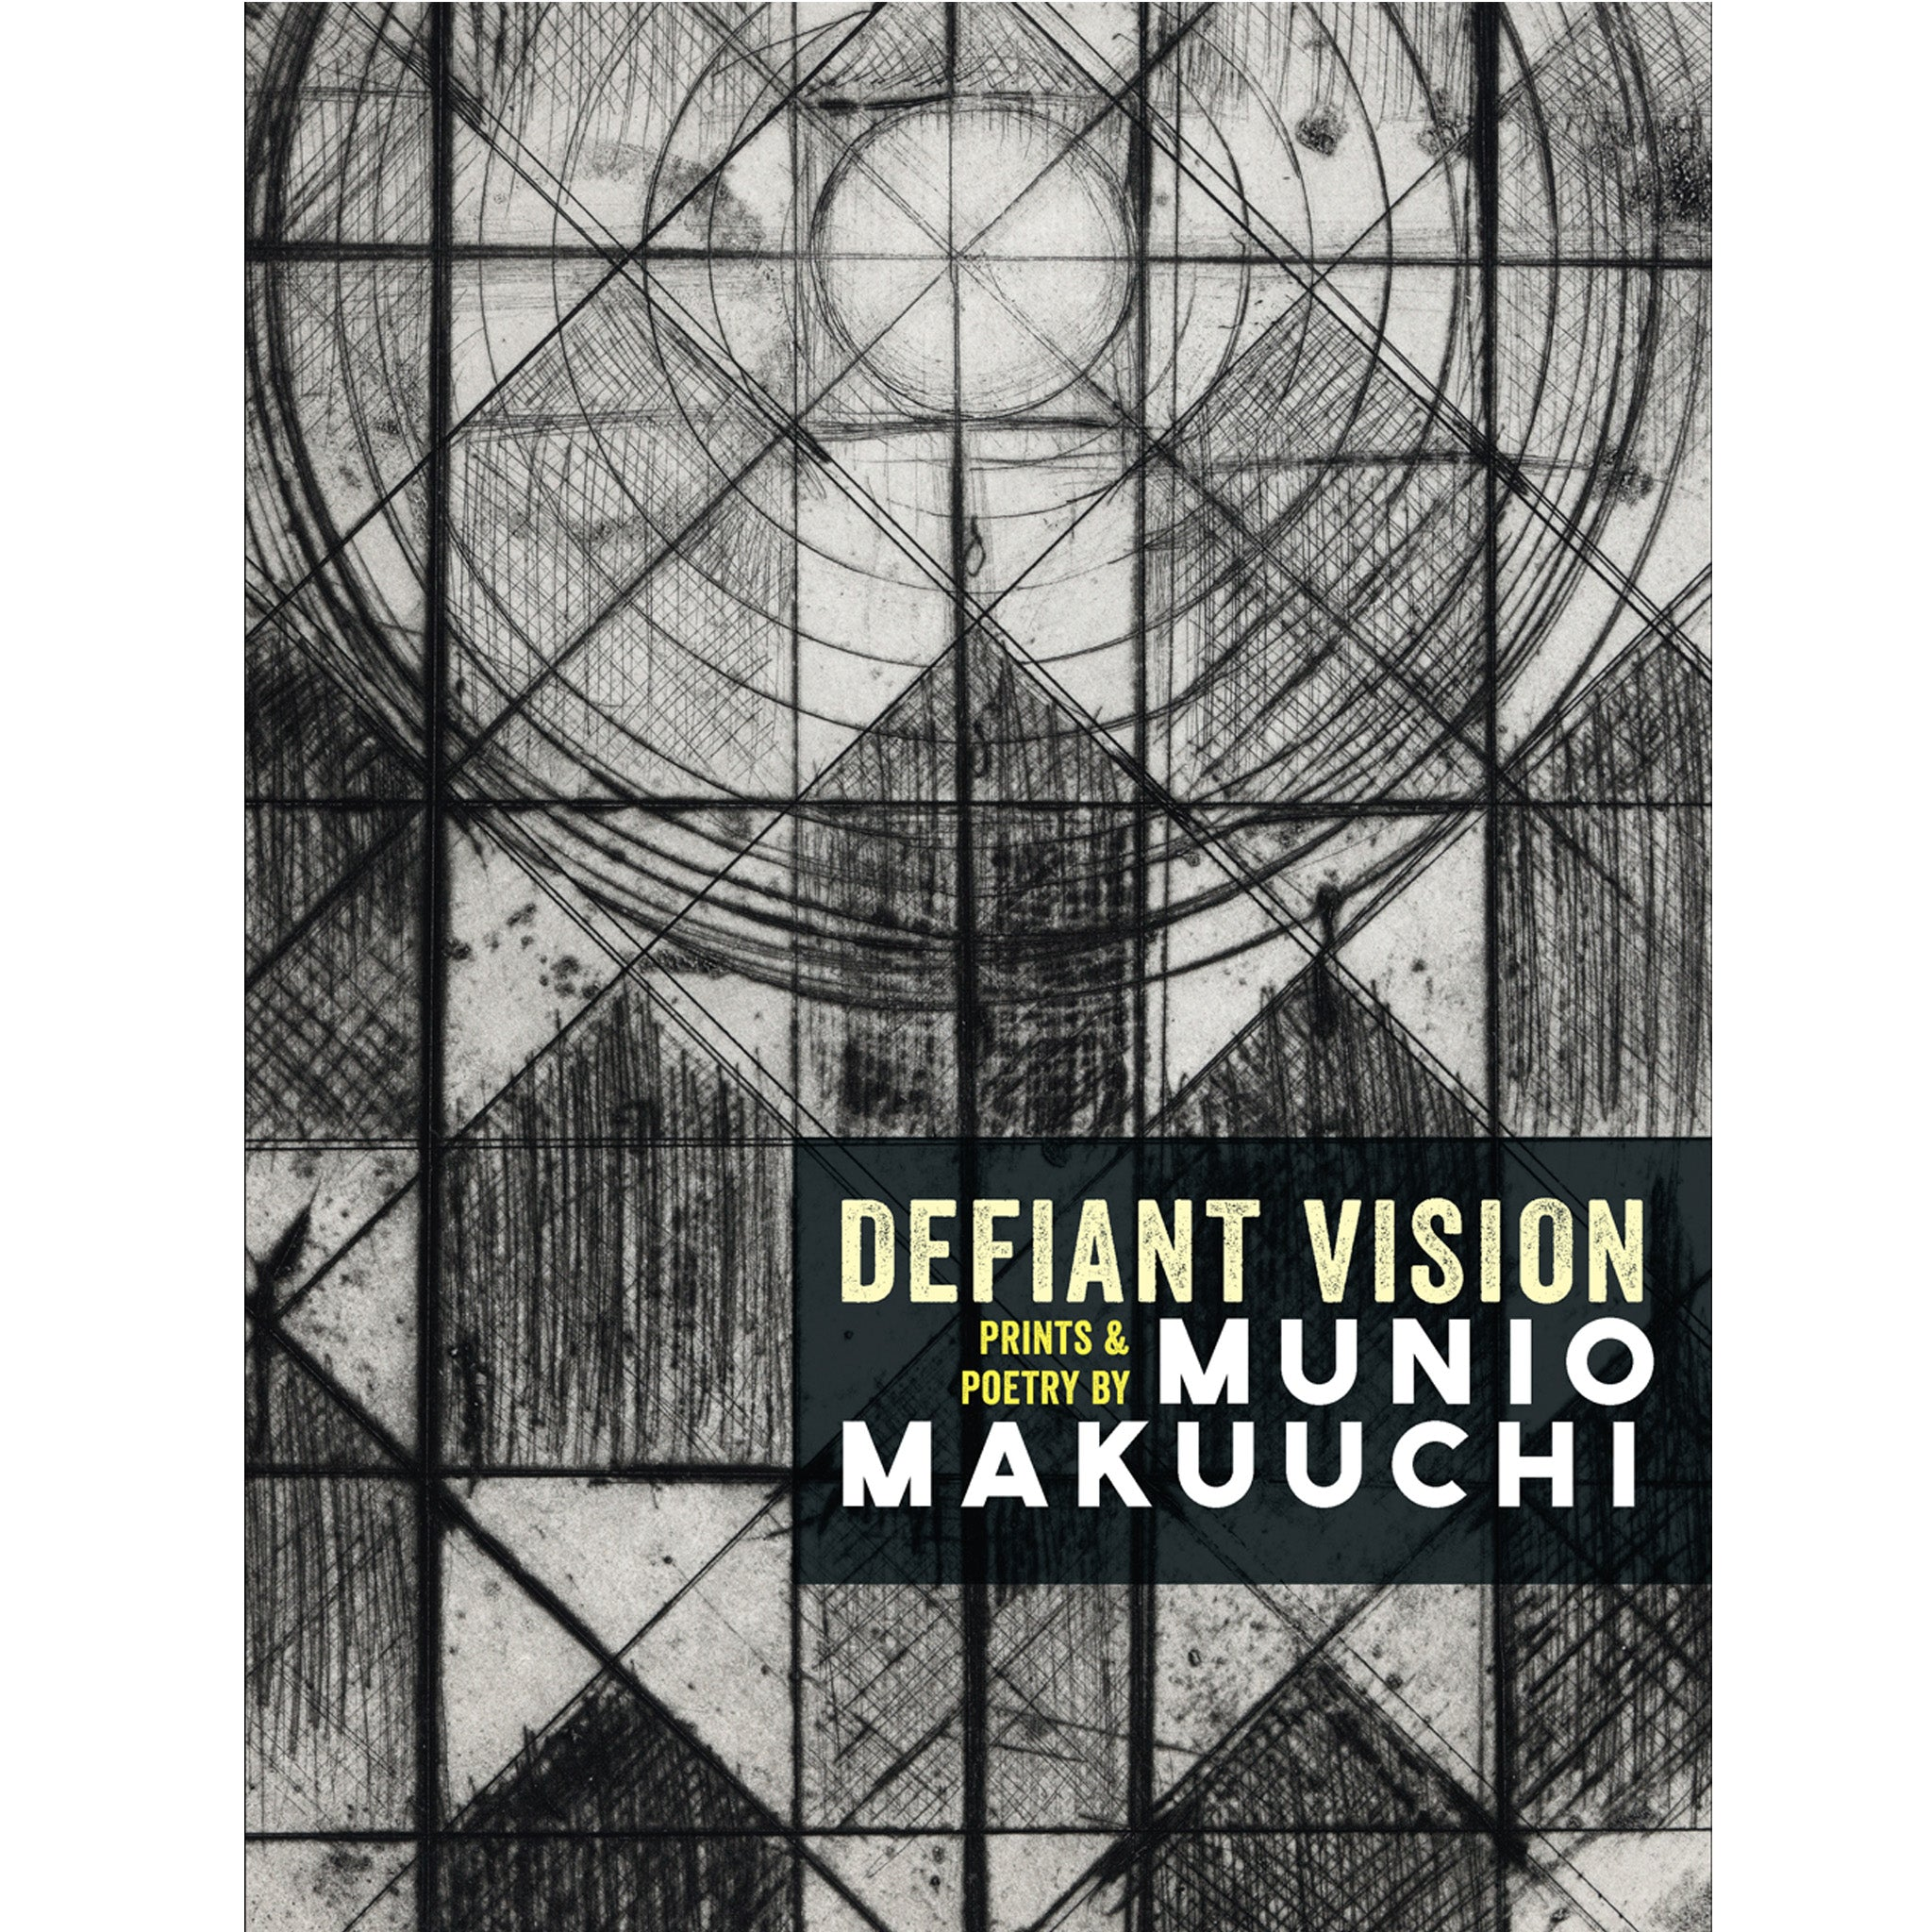 Defiant Vision: Prints & Poetry by Munio Makuuchi Japanese American exhibition catalogue exhibit catalog scma smith colege museum of art